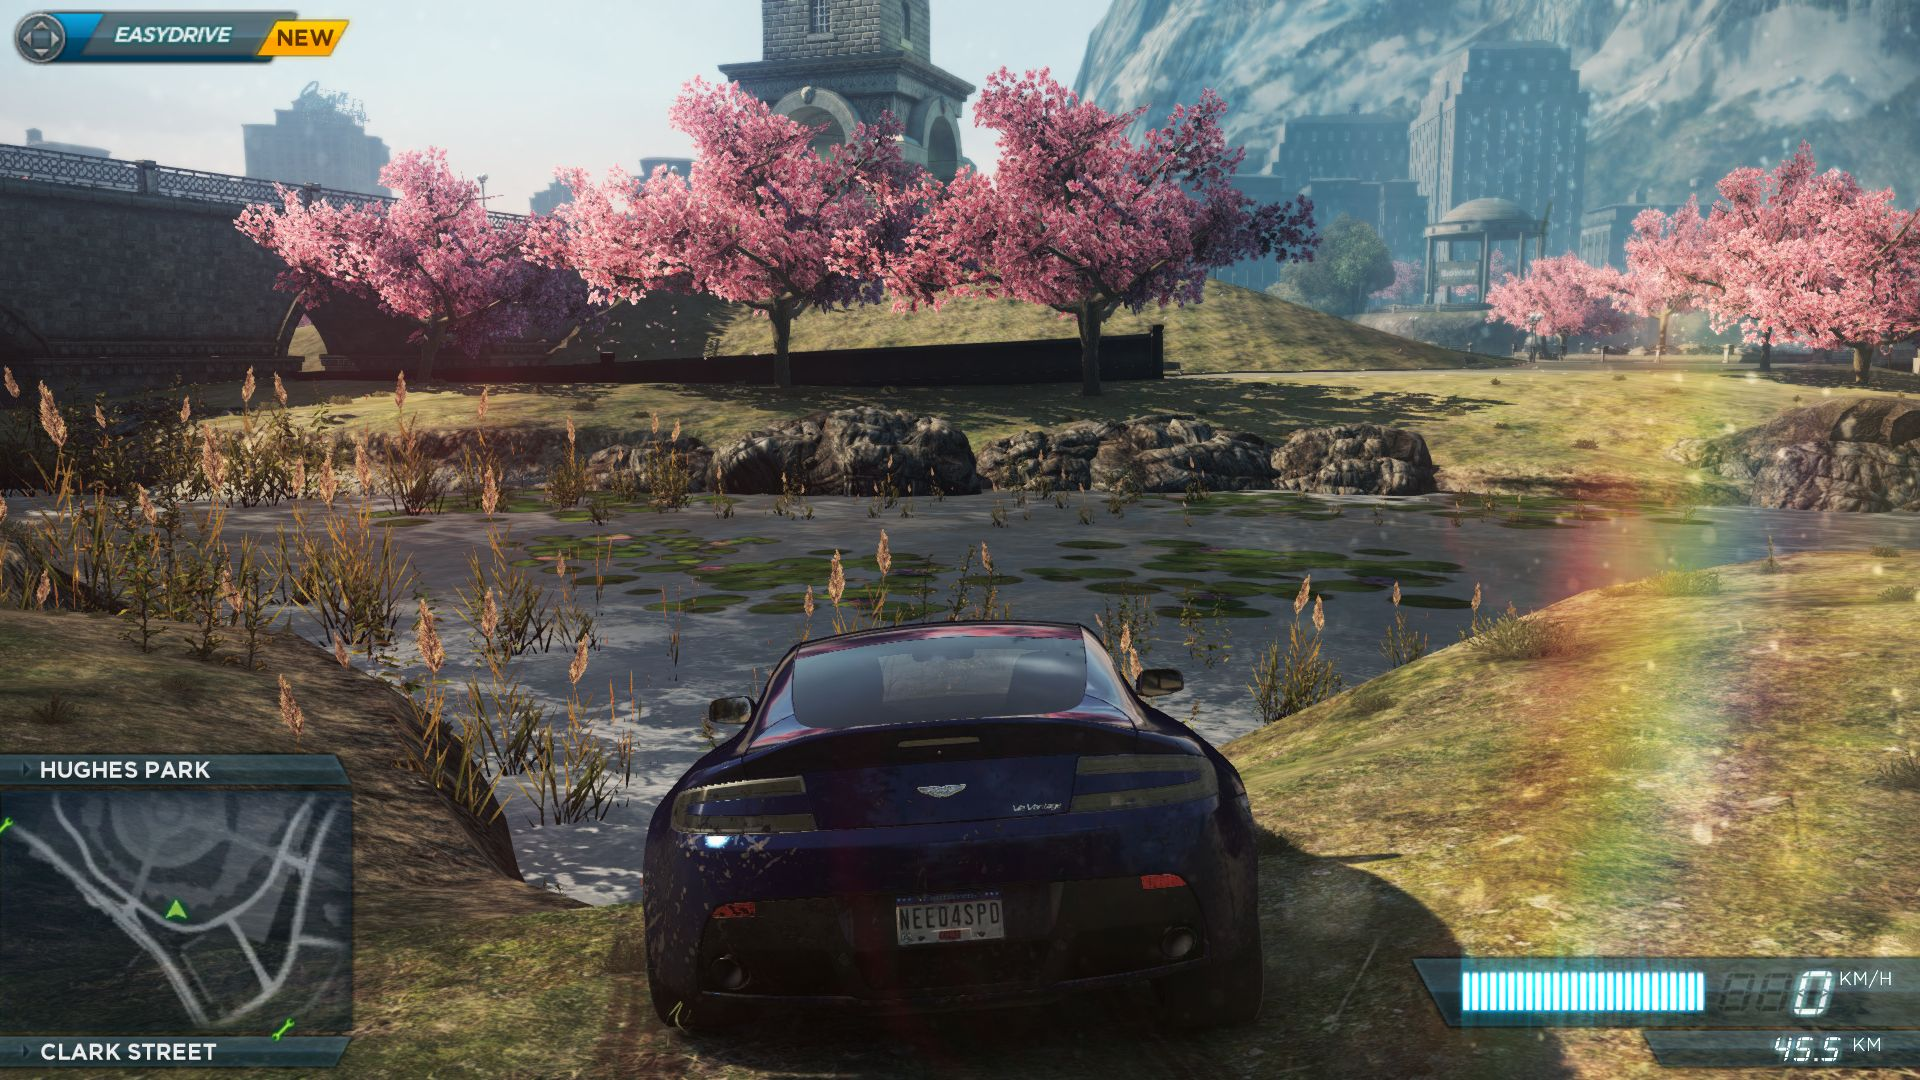 Review of the passage of NFS Most Wanted 2012